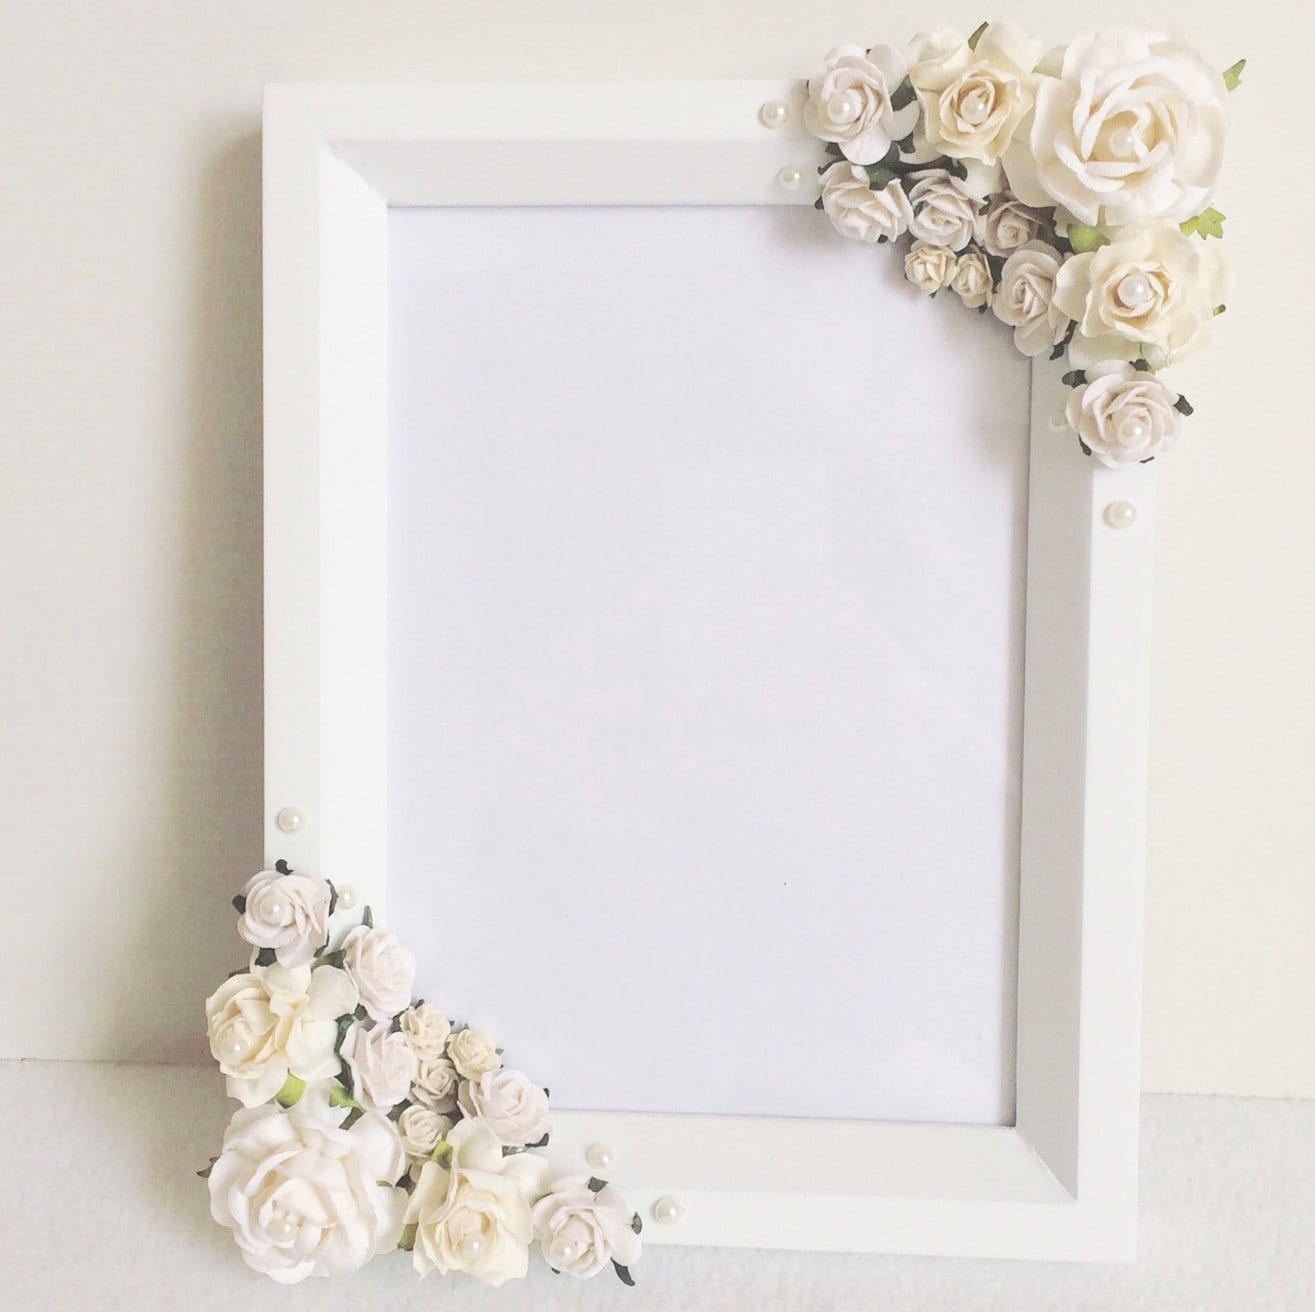 Personalized Wedding Photo Frames Uk : Request a custom order and have something made just for you.